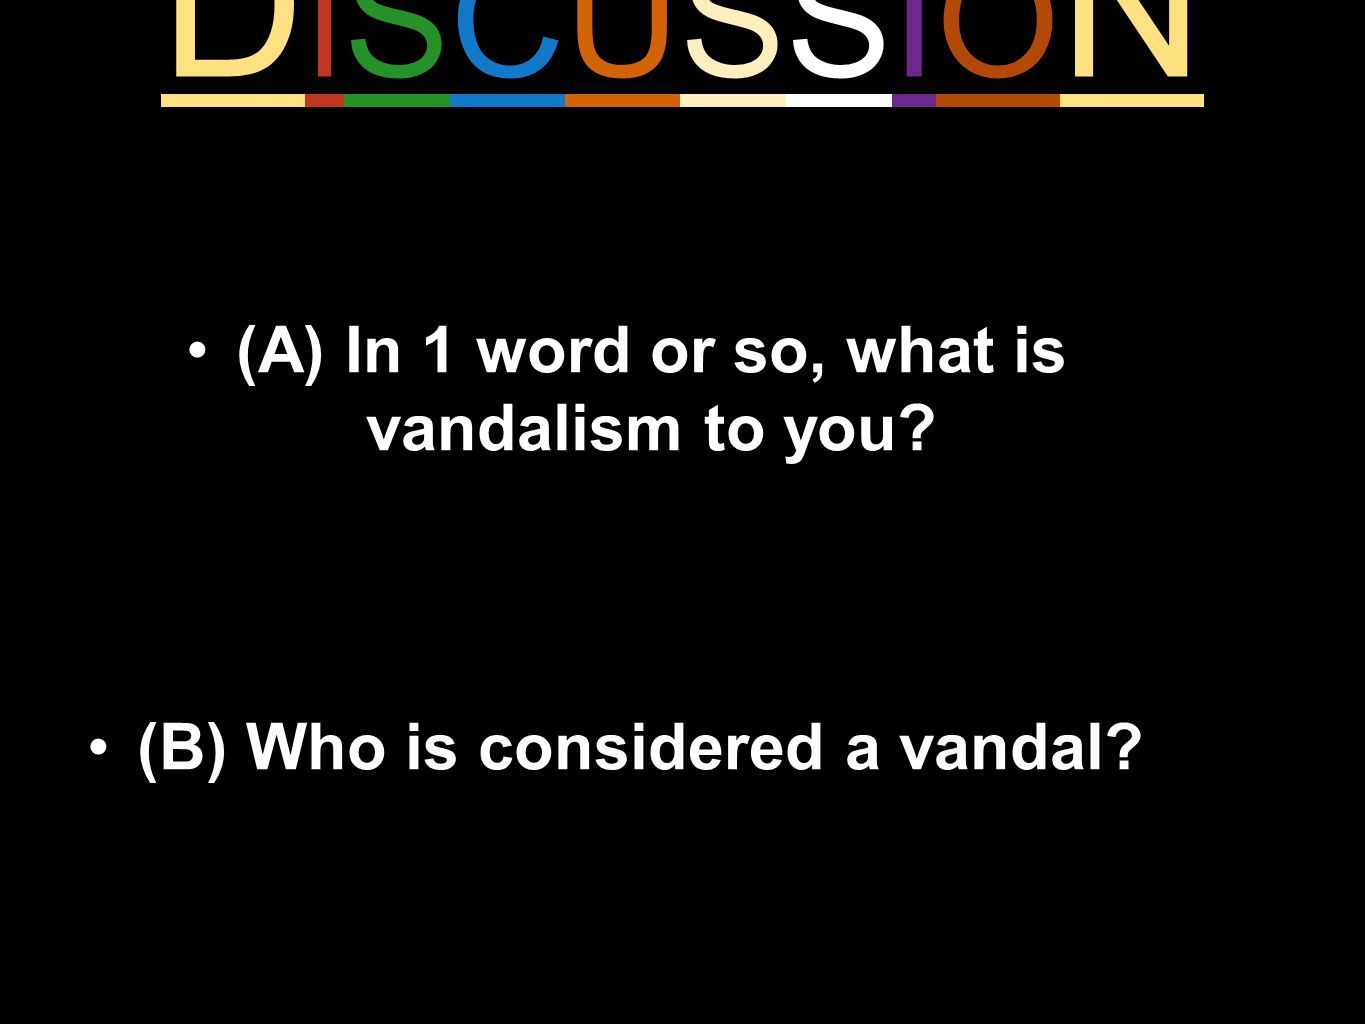 DISCUSSIONDISCUSSION (A) In 1 word or so, what is vandalism to you (B) Who is considered a vandal